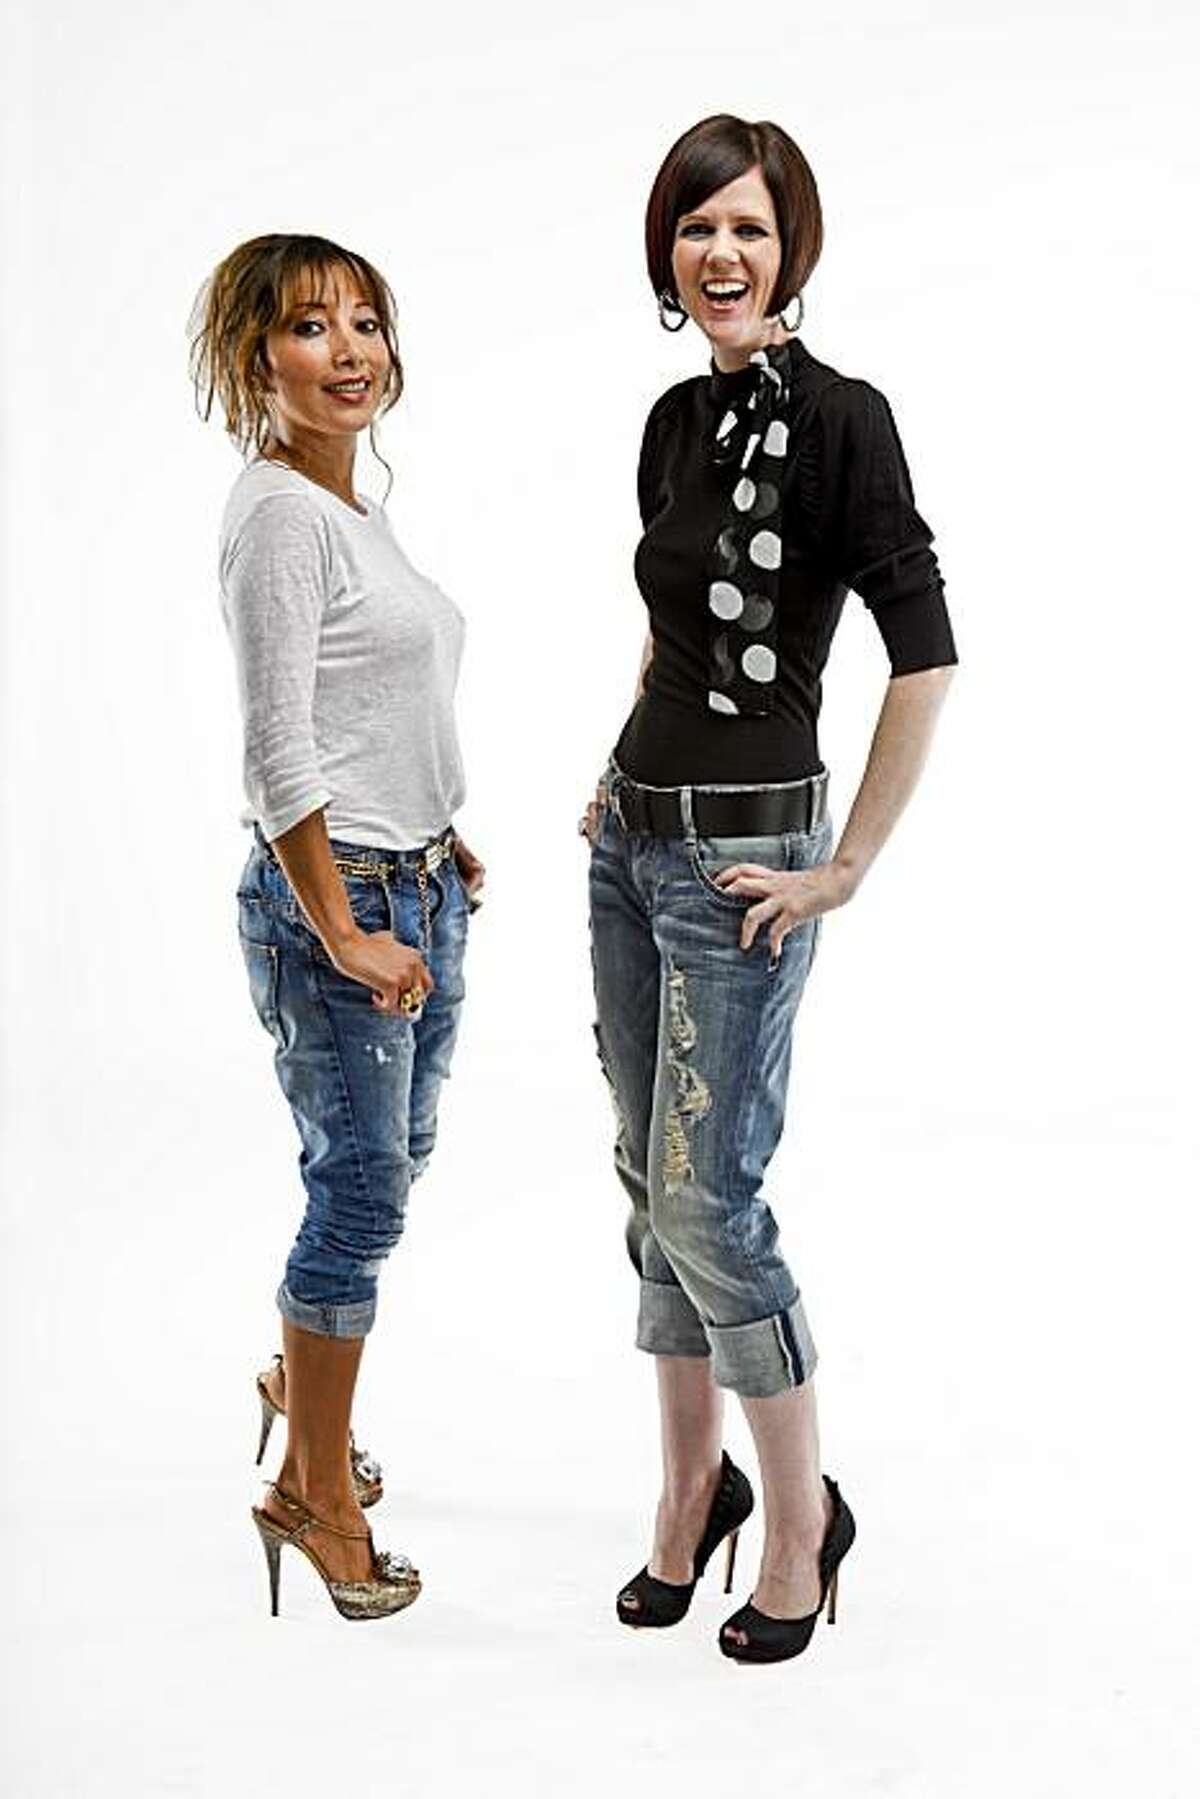 Client Wendy Haller, right, wears a casual outfit that stylist Karen Tamblyn, left, helped her assemble: Distressed boyfriend jeans by Guess by Marciano, a black top by Mango with a polka dot ribbon ($49), a Banana Republic black belt, Alexander McQueen black silk pumps, and a Chanel clutch.